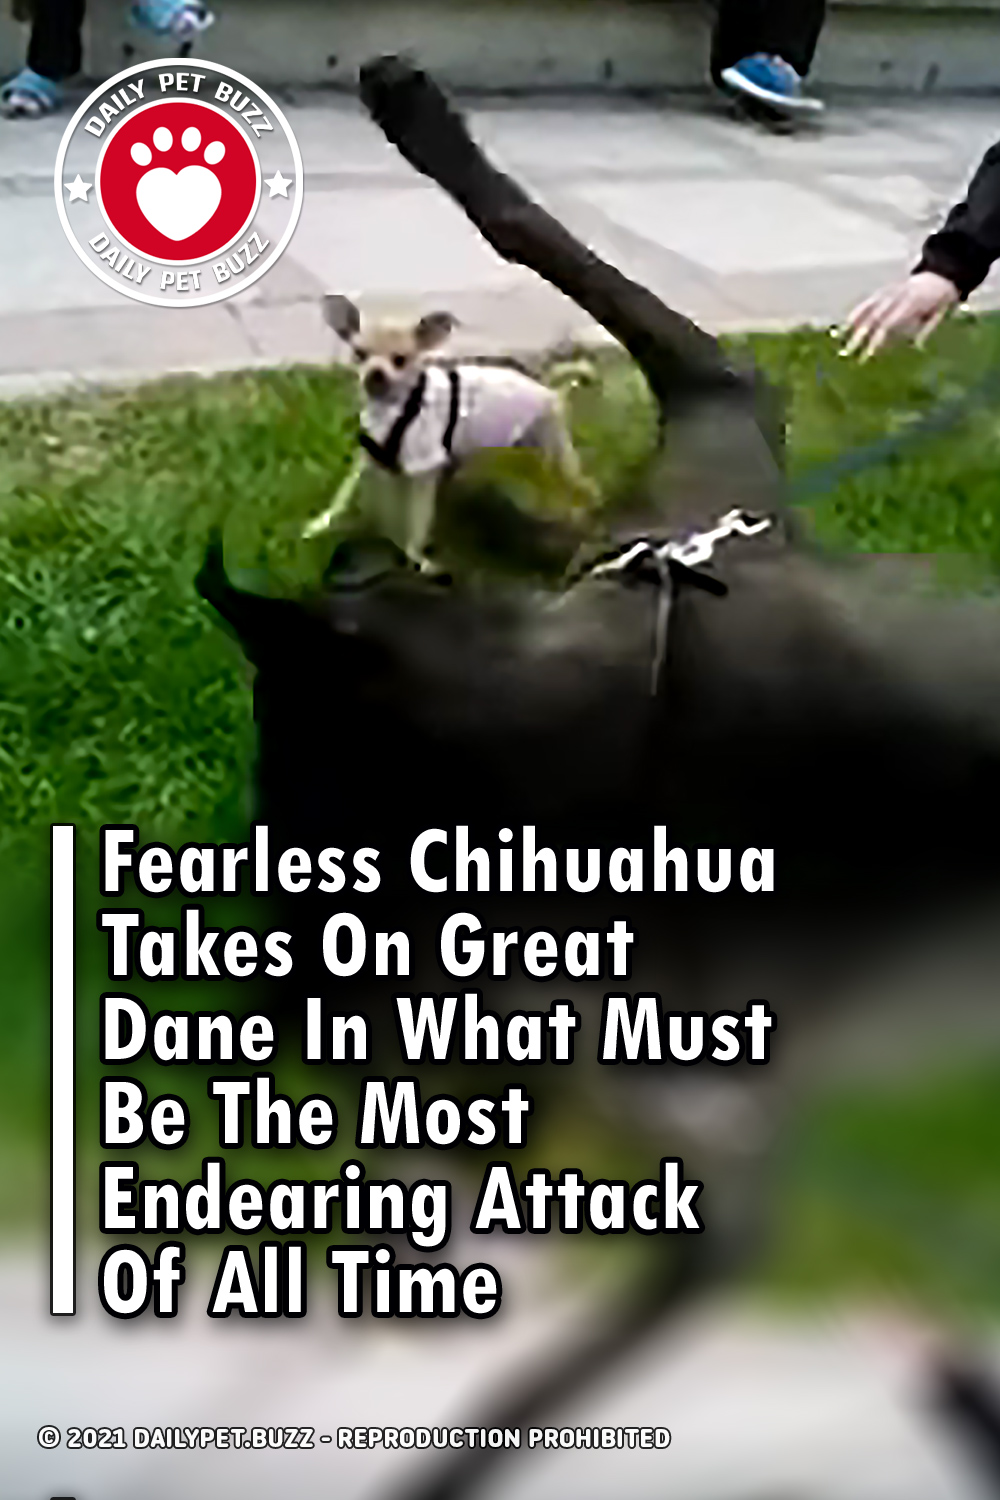 Fearless Chihuahua Takes On Great Dane In What Must Be The Most Endearing Attack Of All Time